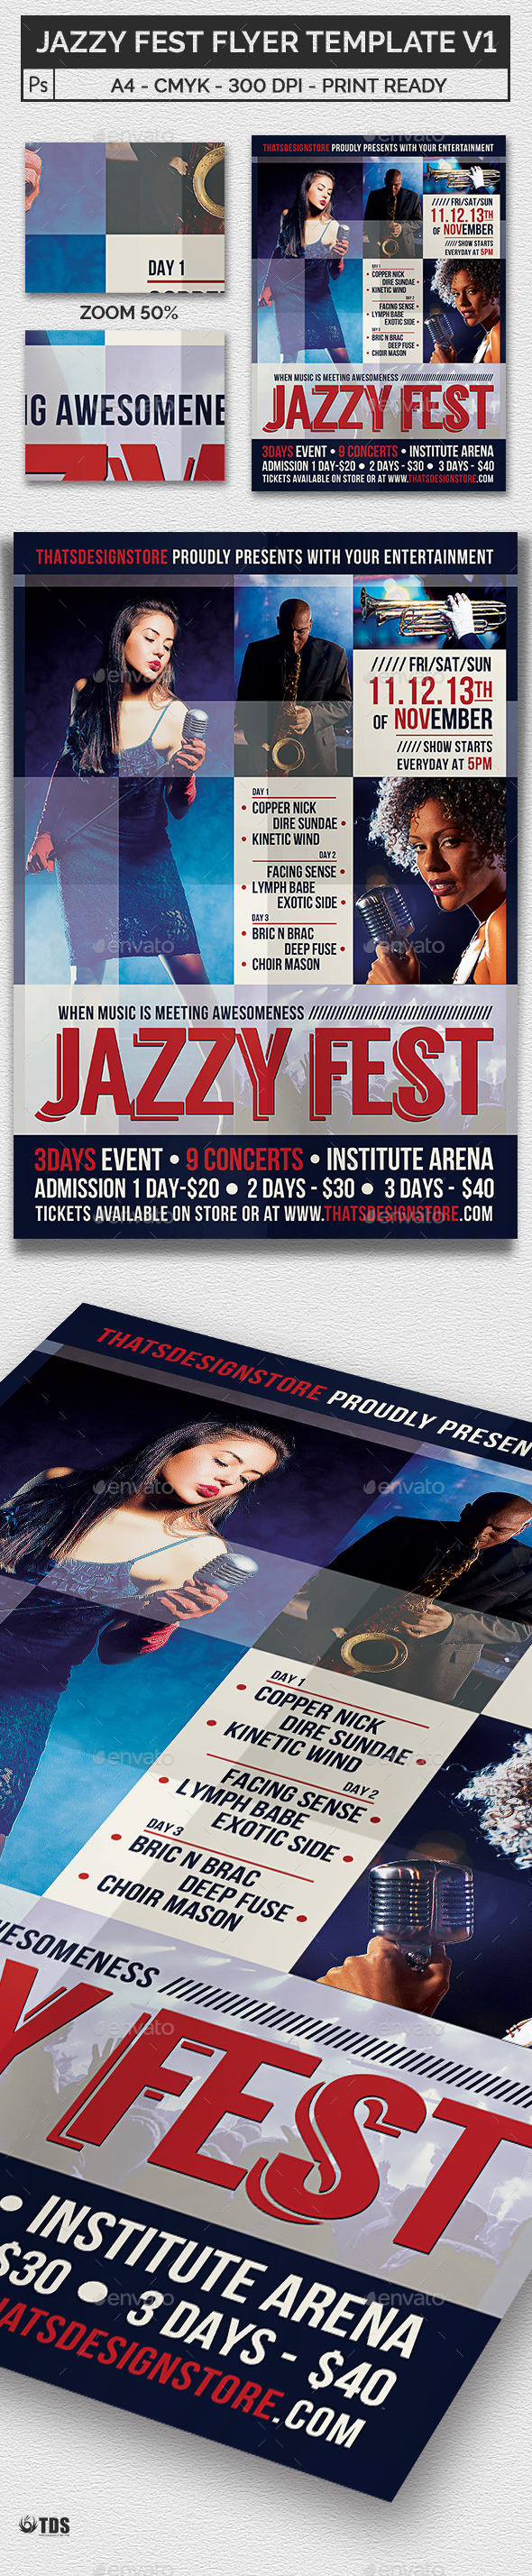 Jazzy Fest Flyer Template V1 - Concerts Events